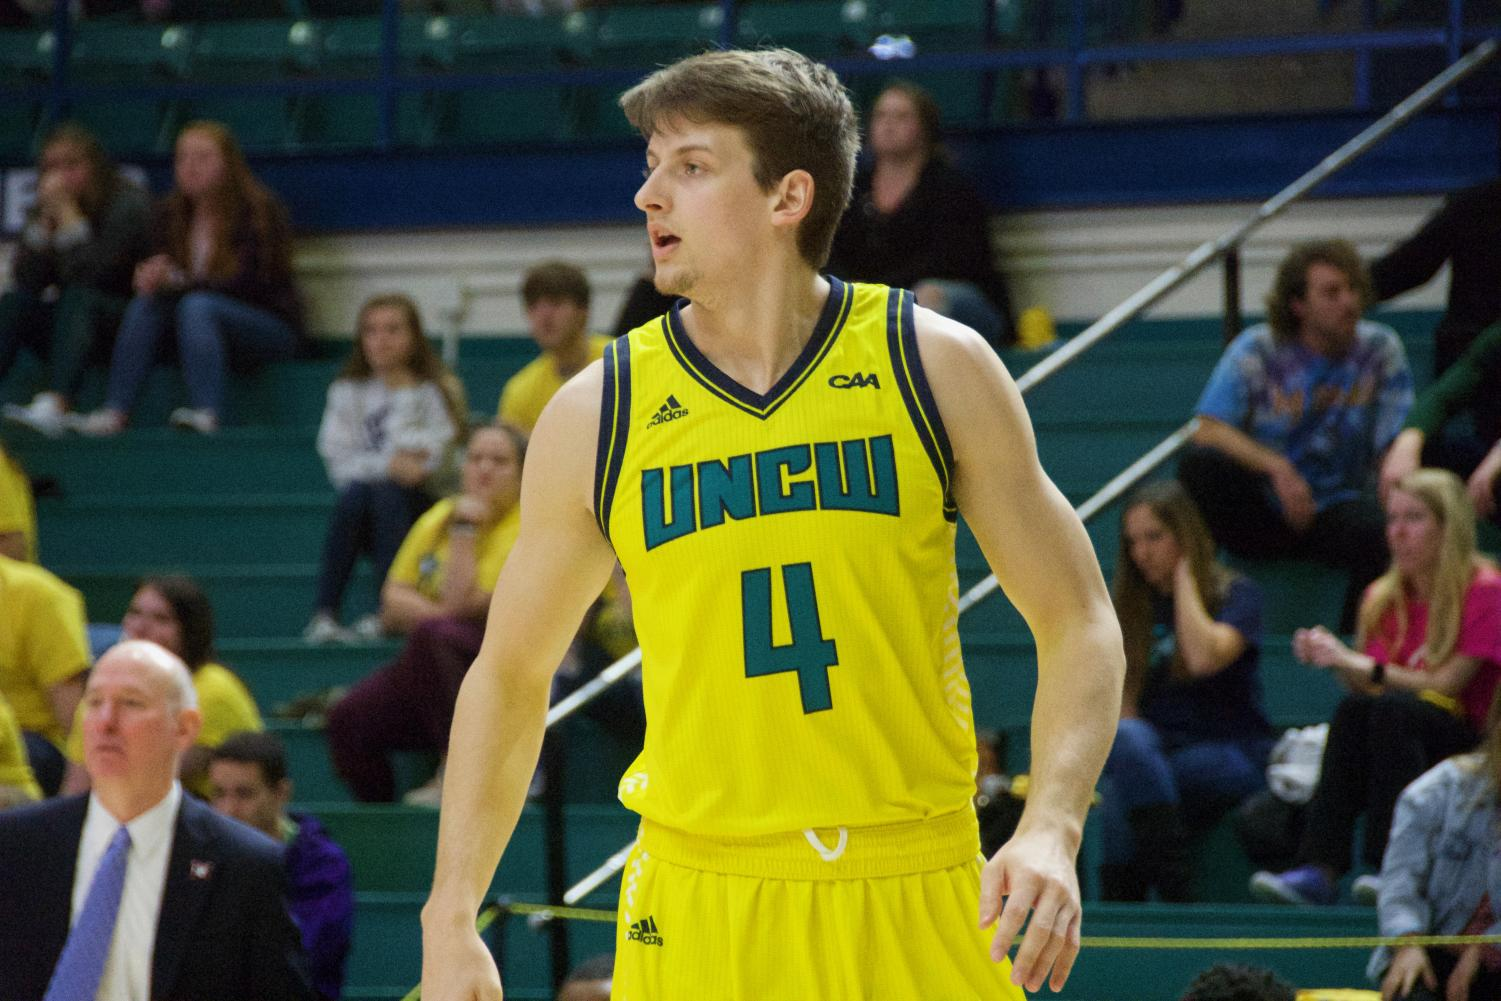 Shawn O'Connell during UNCW's matchup with Northeastern on Feb. 14, 2019